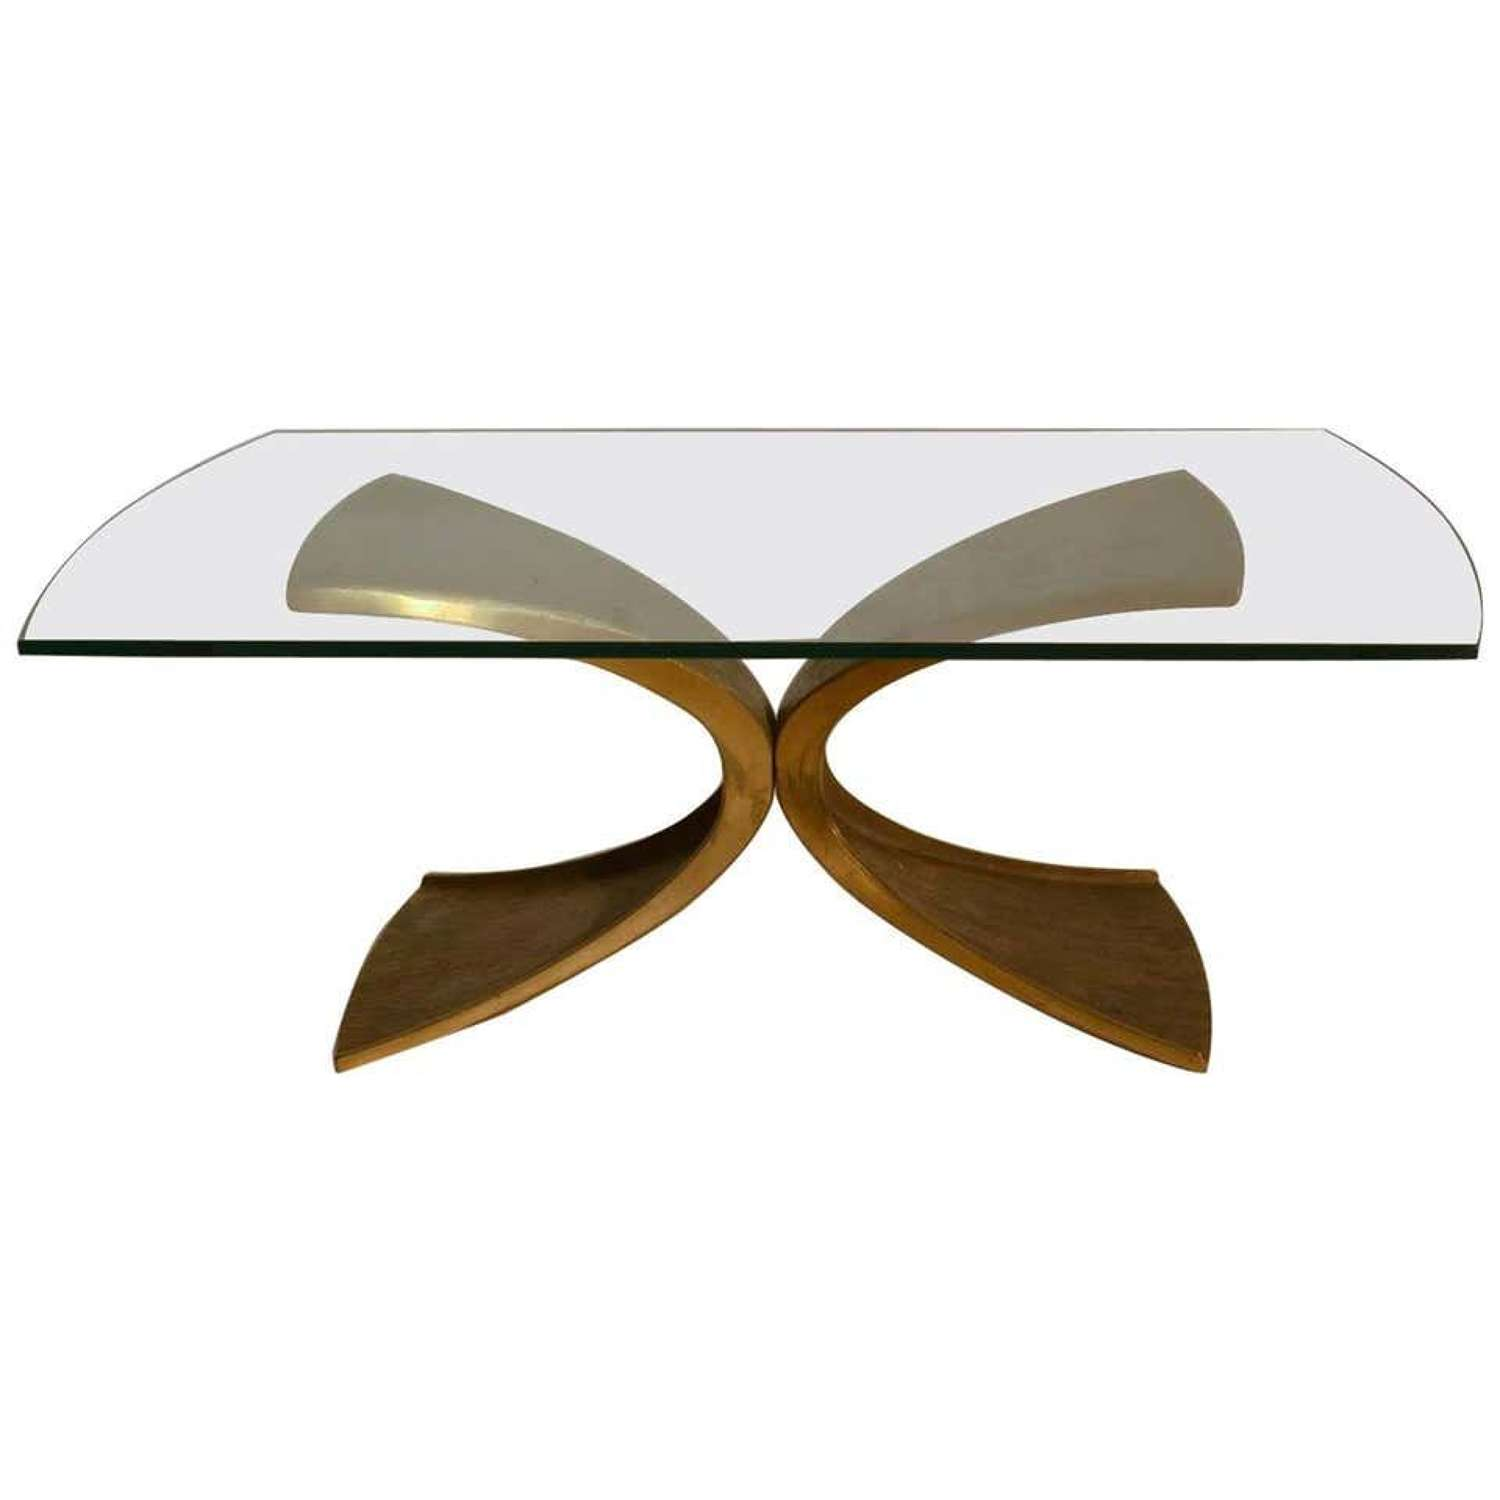 Coffee Table in Bronze & Glass by Luciano Frigerio 1980's